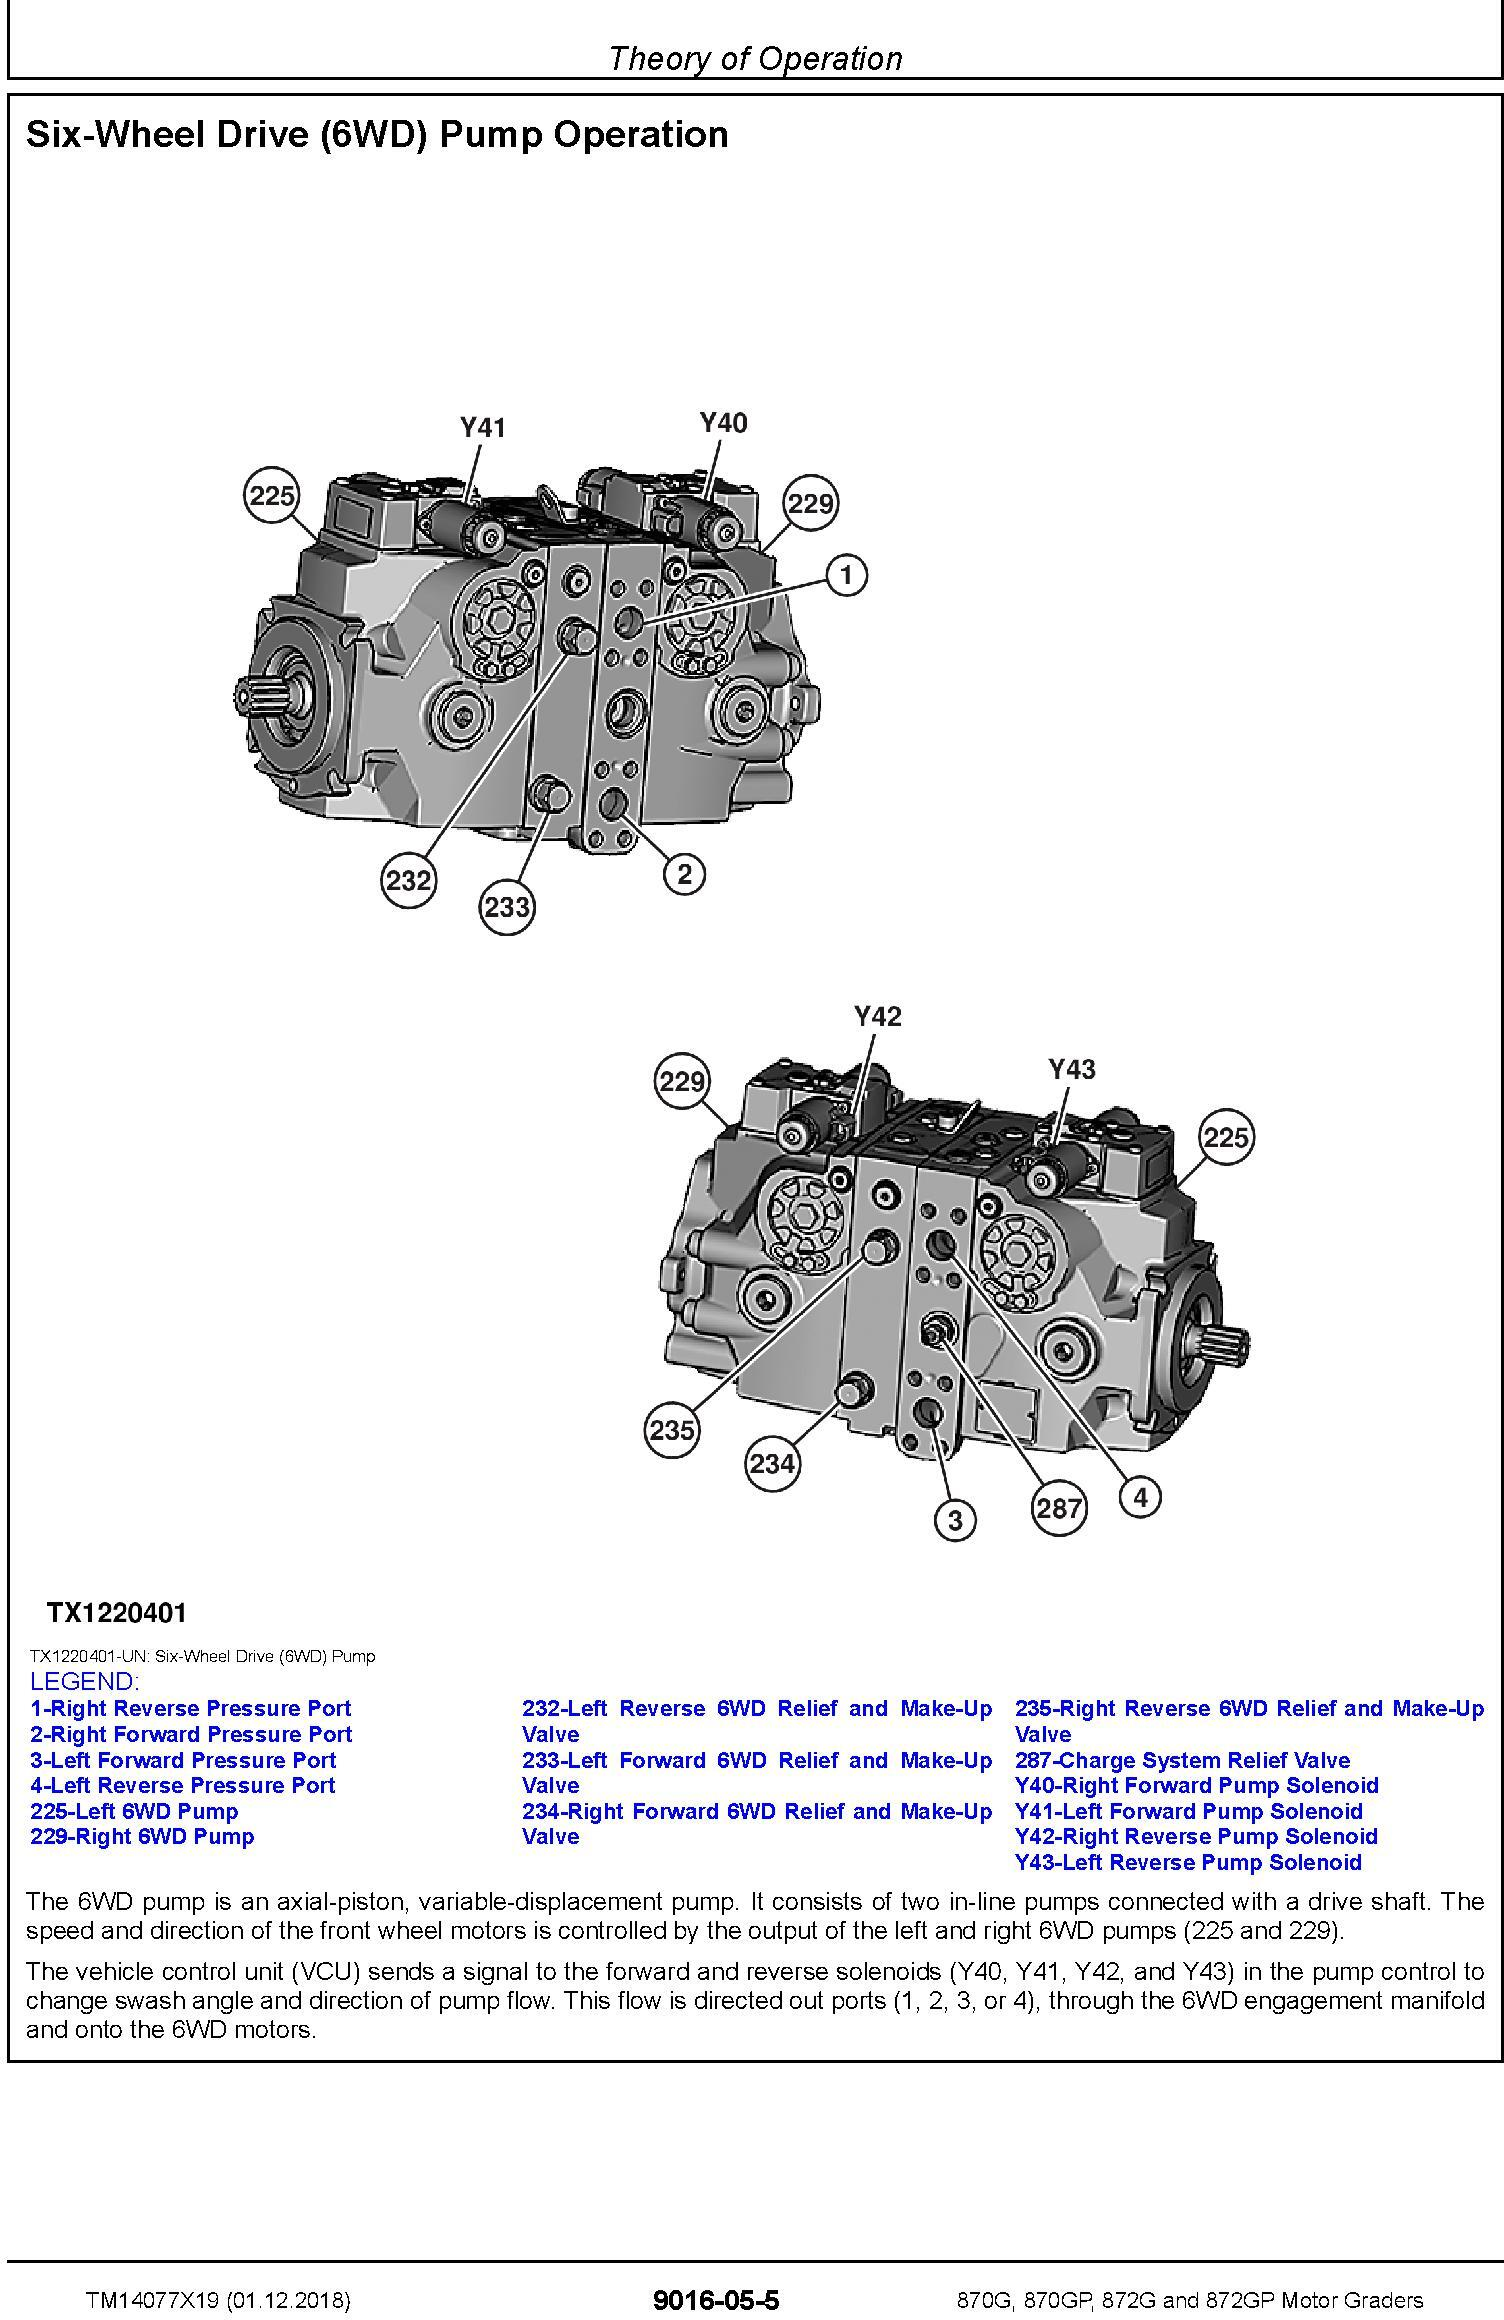 John Deere 870G, 870GP, 872G, 872GP (SN.C678818-680877) Motor Graders Diagnostic Manual (TM14077X19) - 3